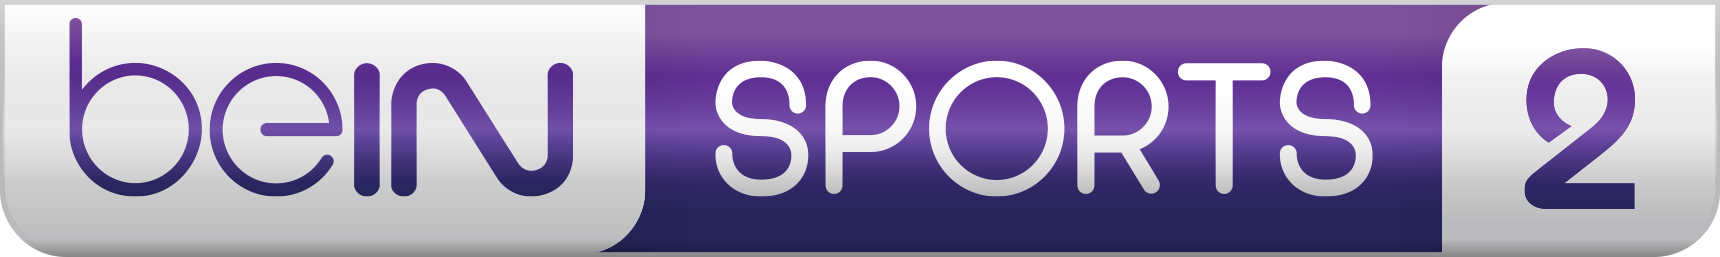 Image result for beIN Sports 2 png